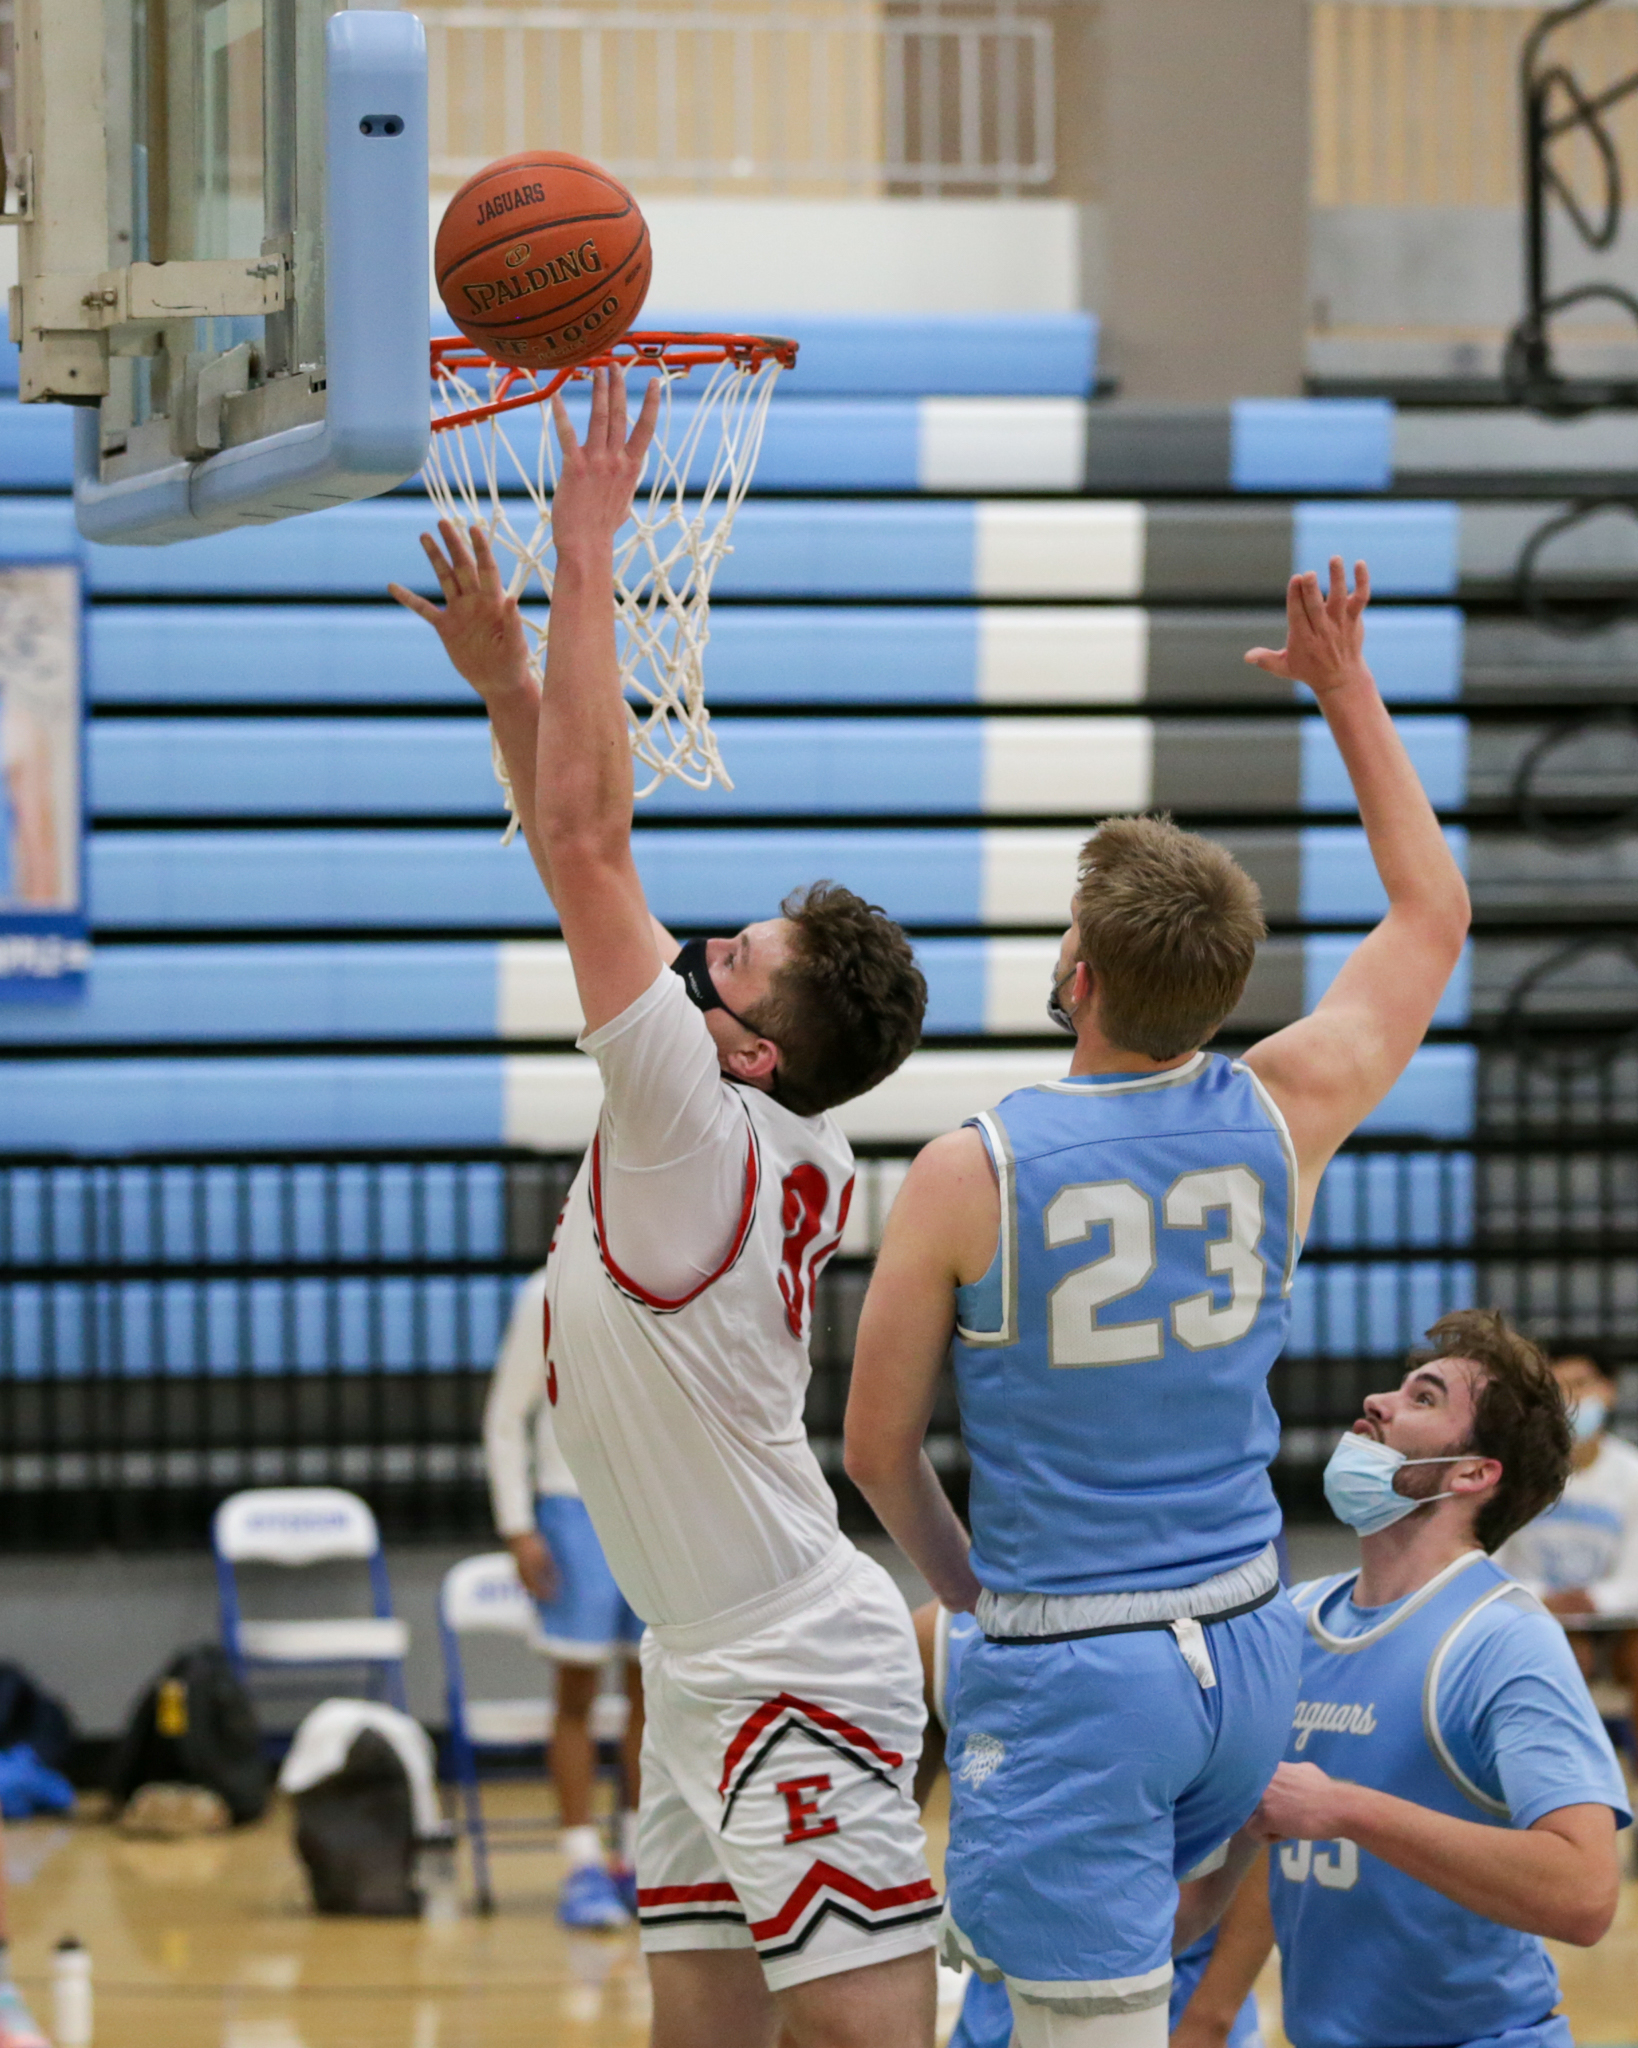 Duluth East's Noah Paulson (32) goes up for two of his 16 first-half points against Bloomington Jefferson Thursday night. Paulson finished with 22 points in the Greyhounds' 63-54 victory over the Jaguars. Photo by Jeff Lawler, SportsEngine